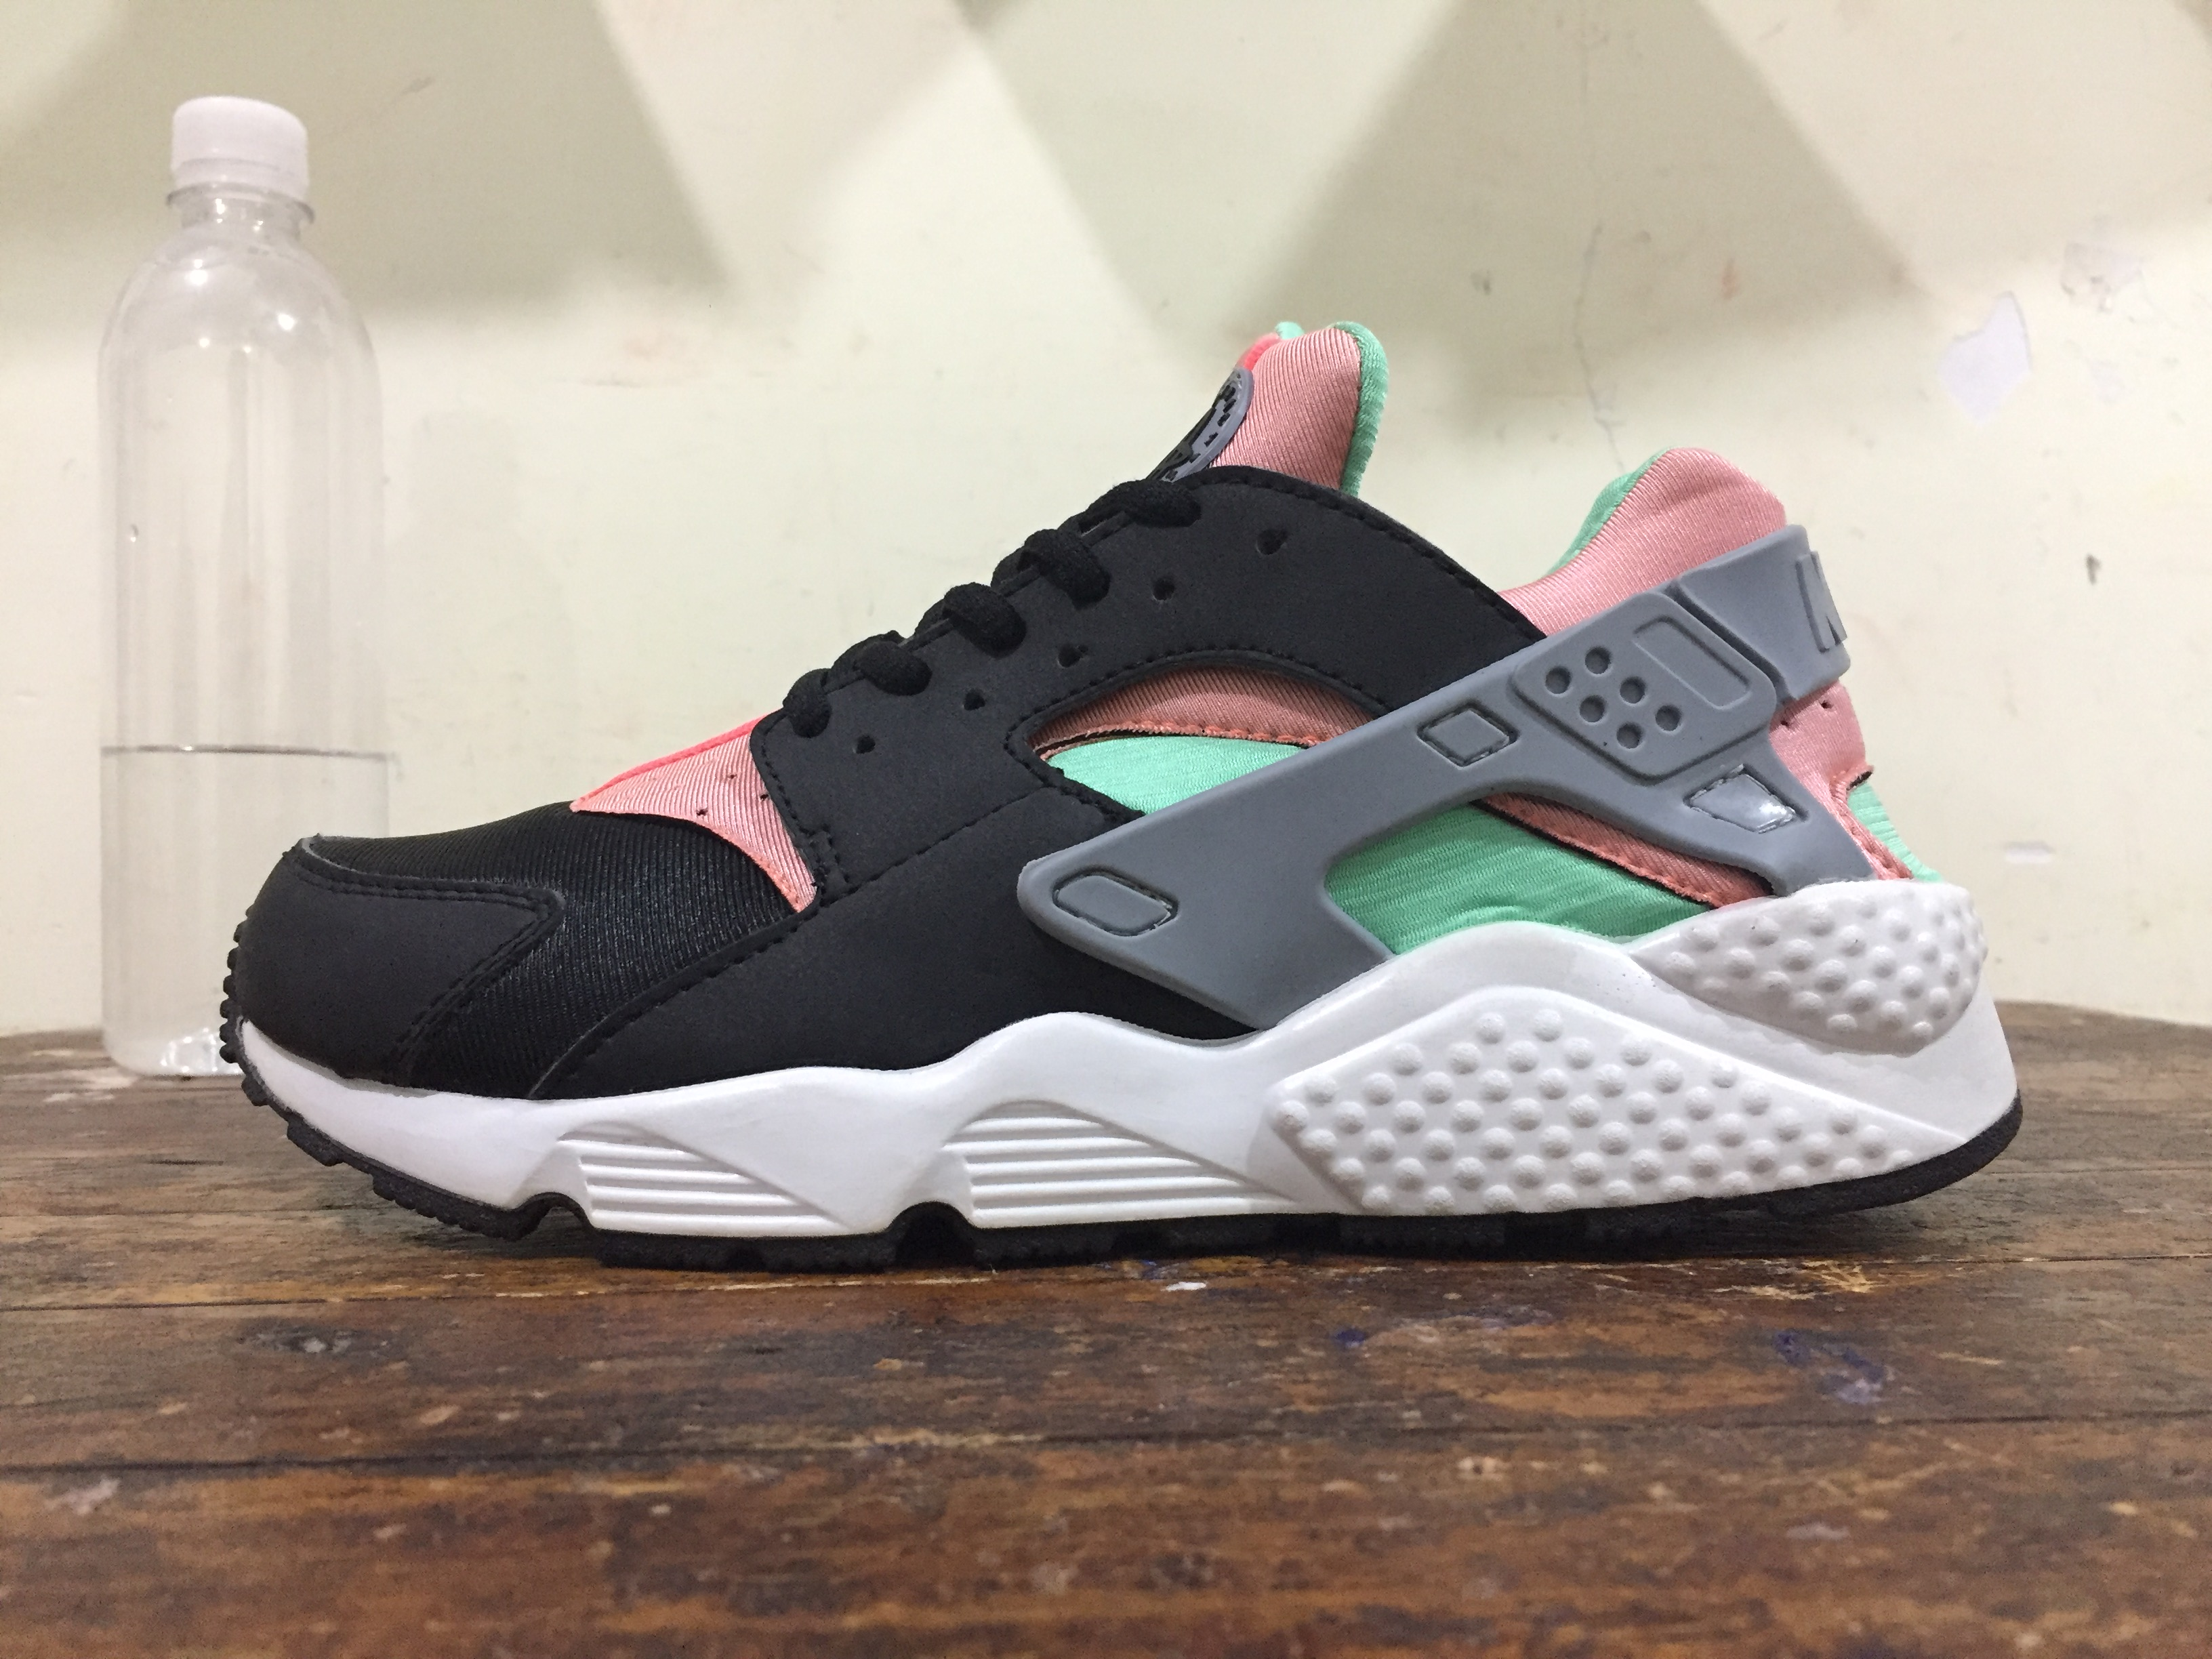 wholesale dealer 4a41f c9f93 ... sale nike air huarache black pink green. u2039 u203a eca3c 87a55